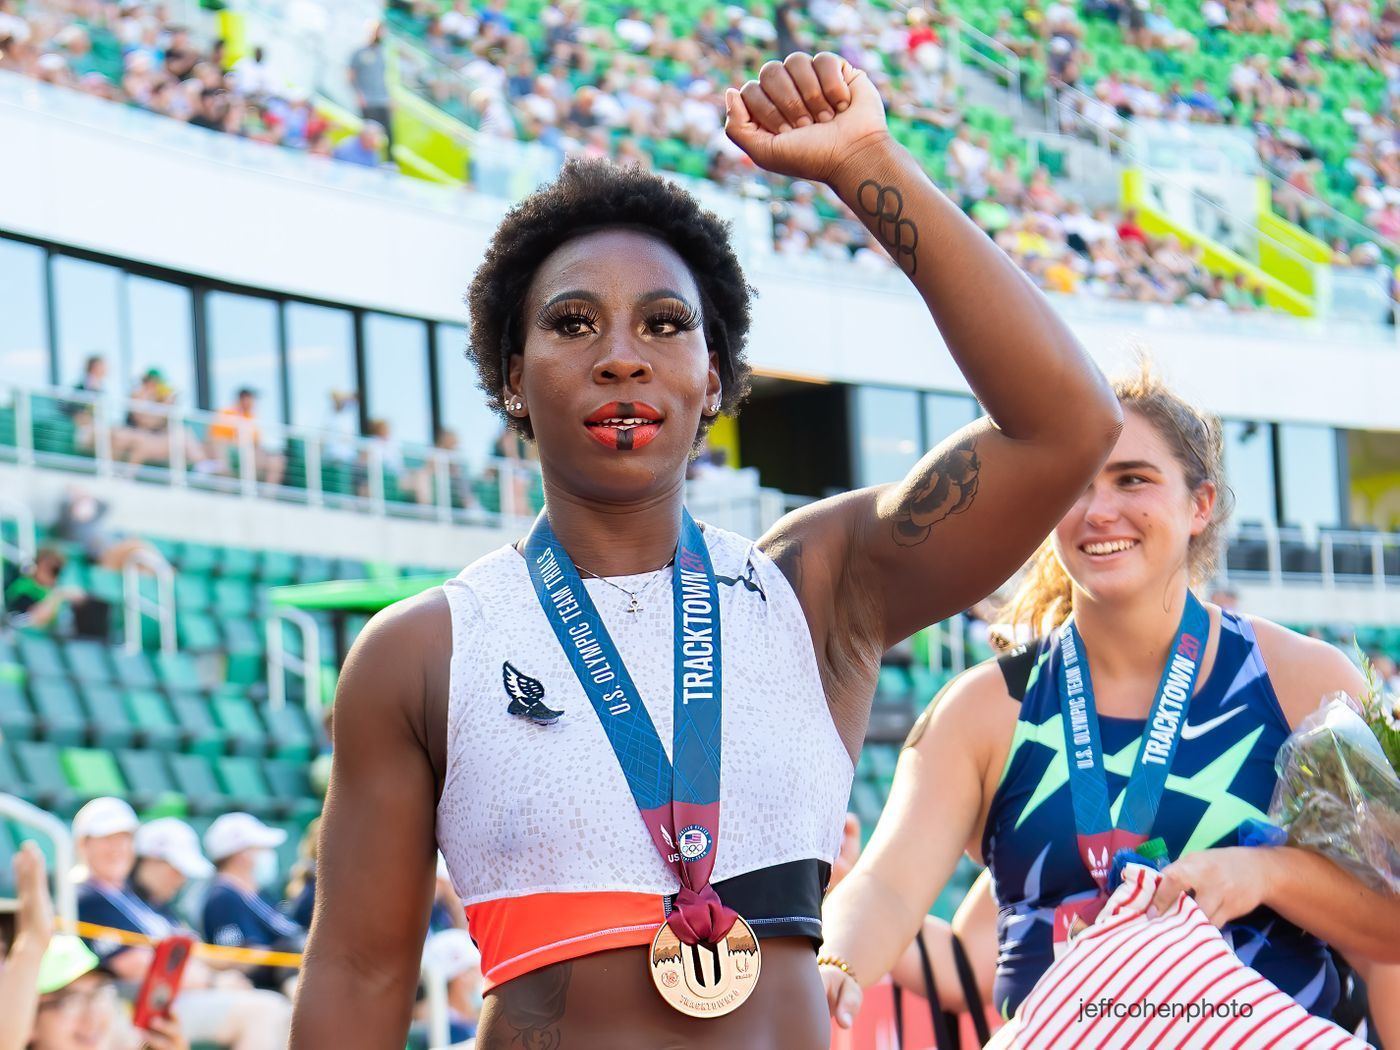 berry-hammerw-2021-US-Oly-Trials--day-7-2860-jeff-cohen-photo--web.jpg